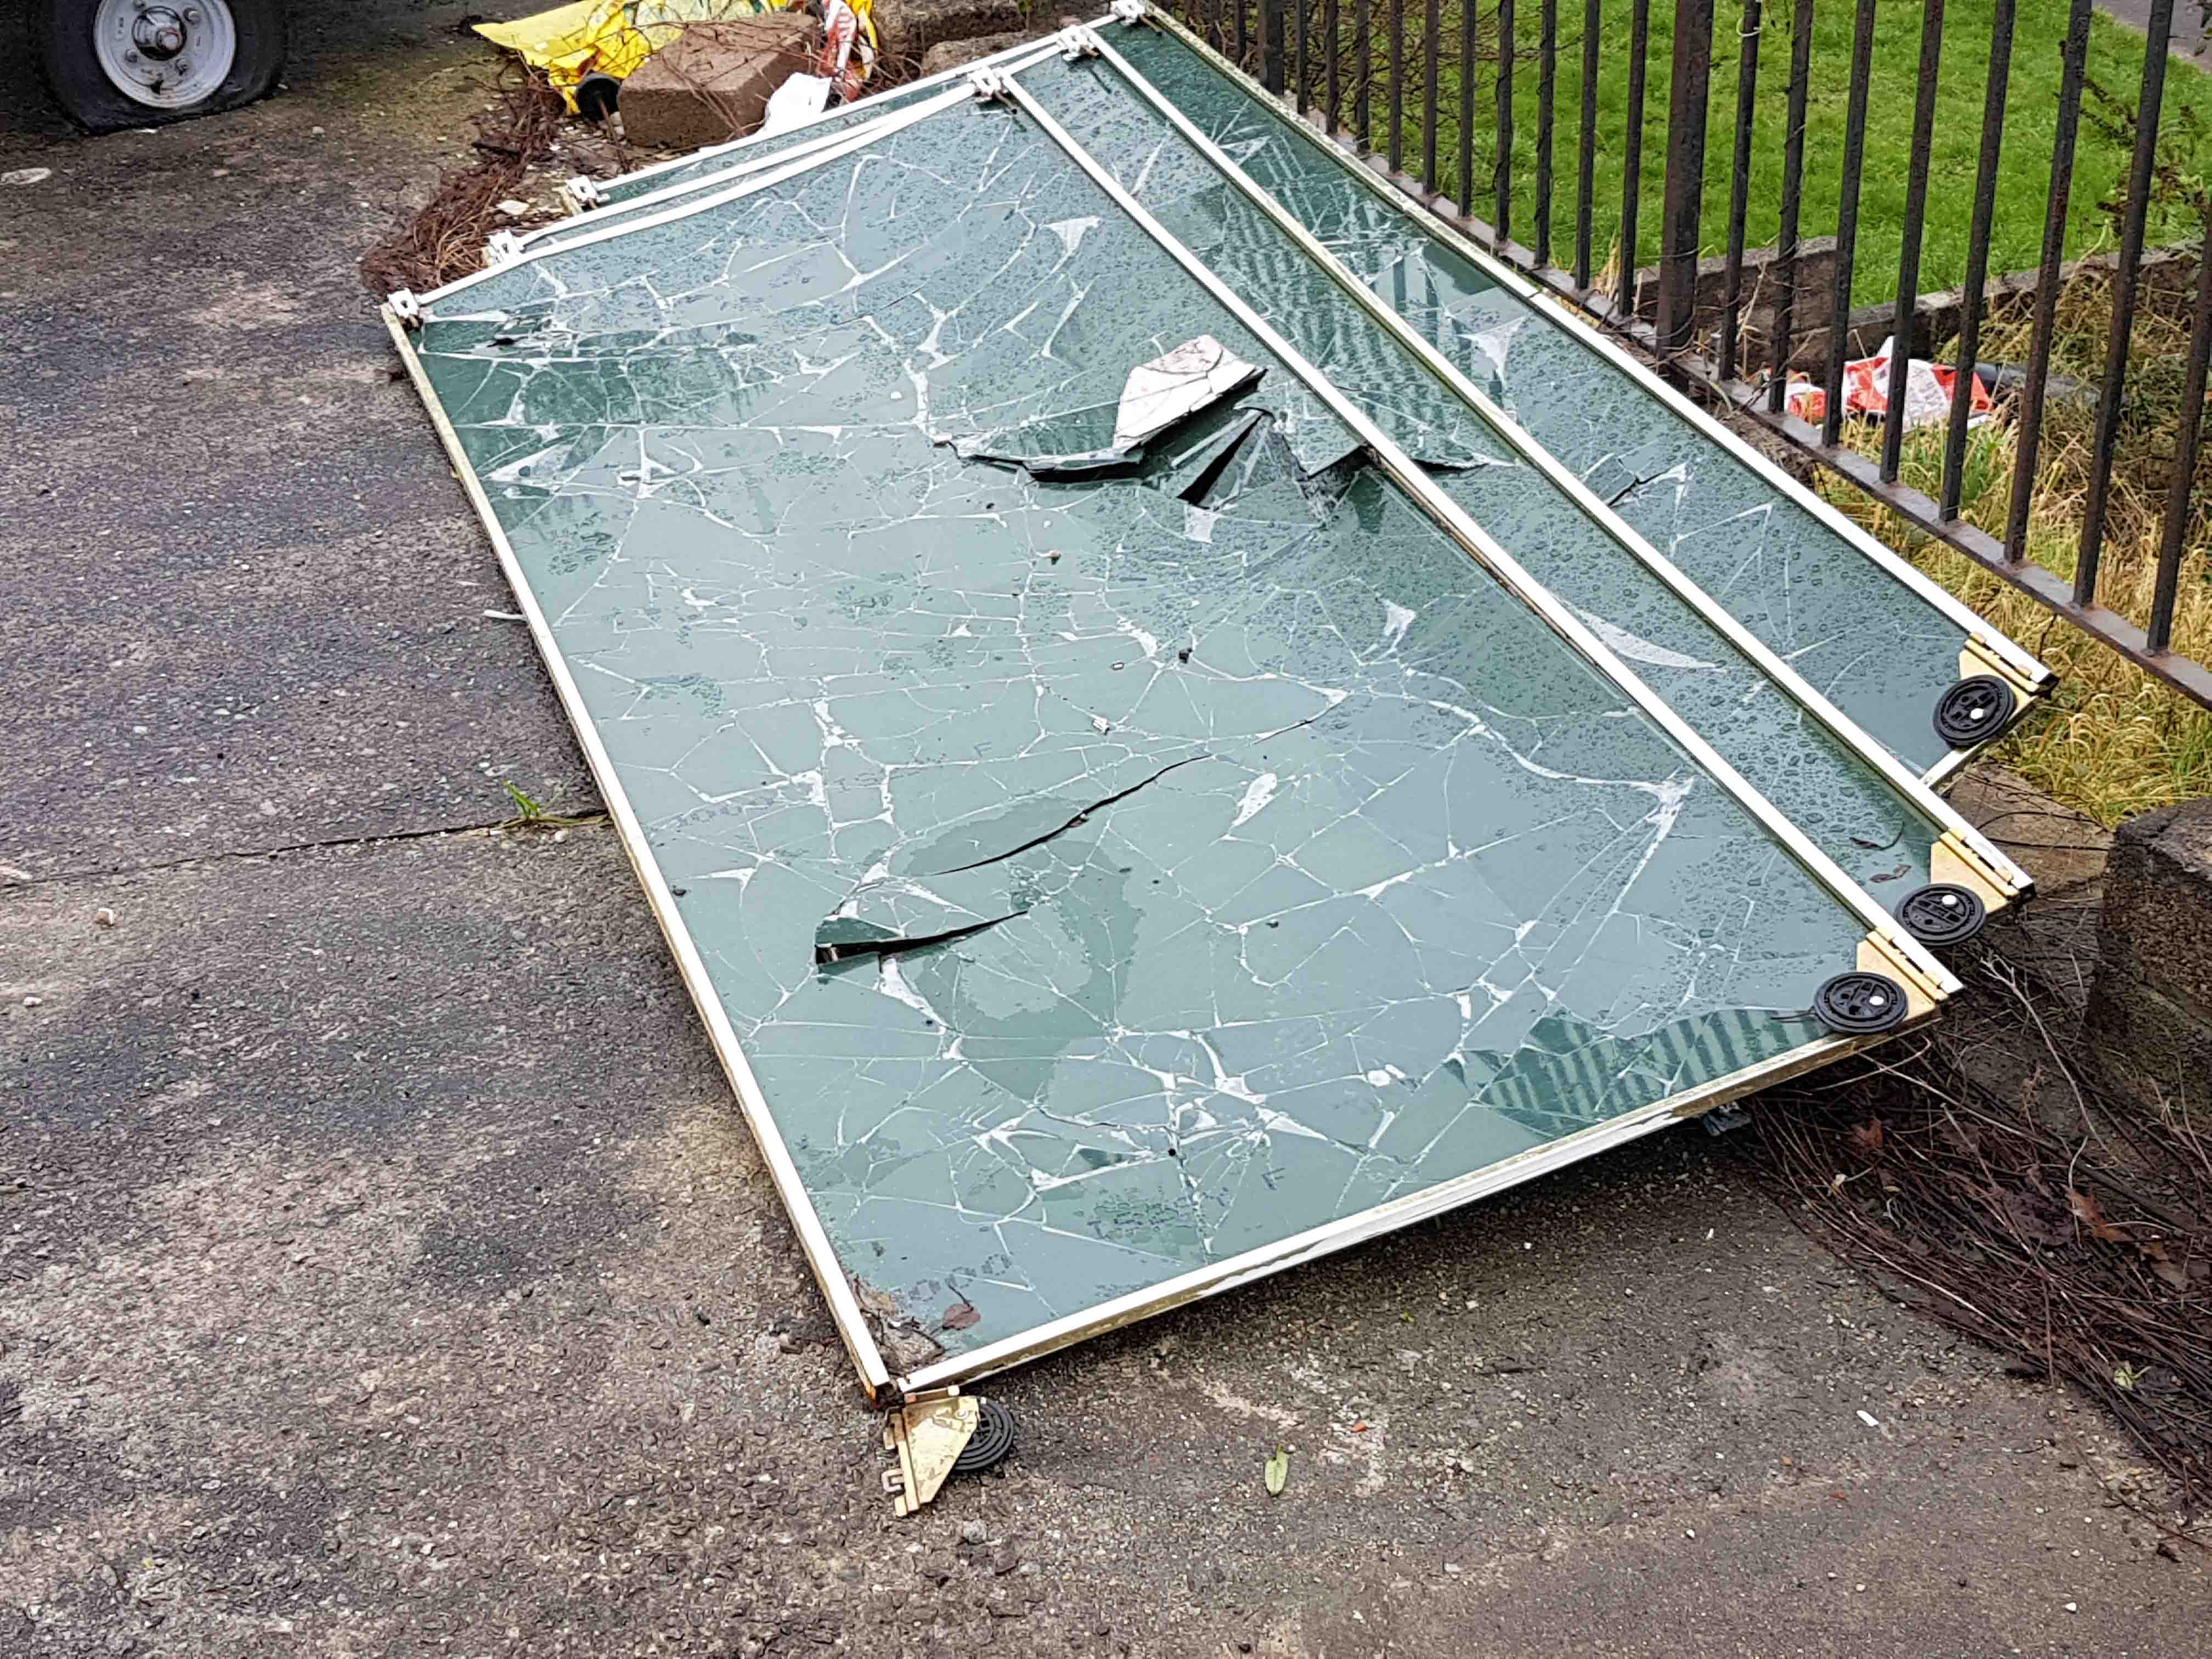 Image of fly tipped glass